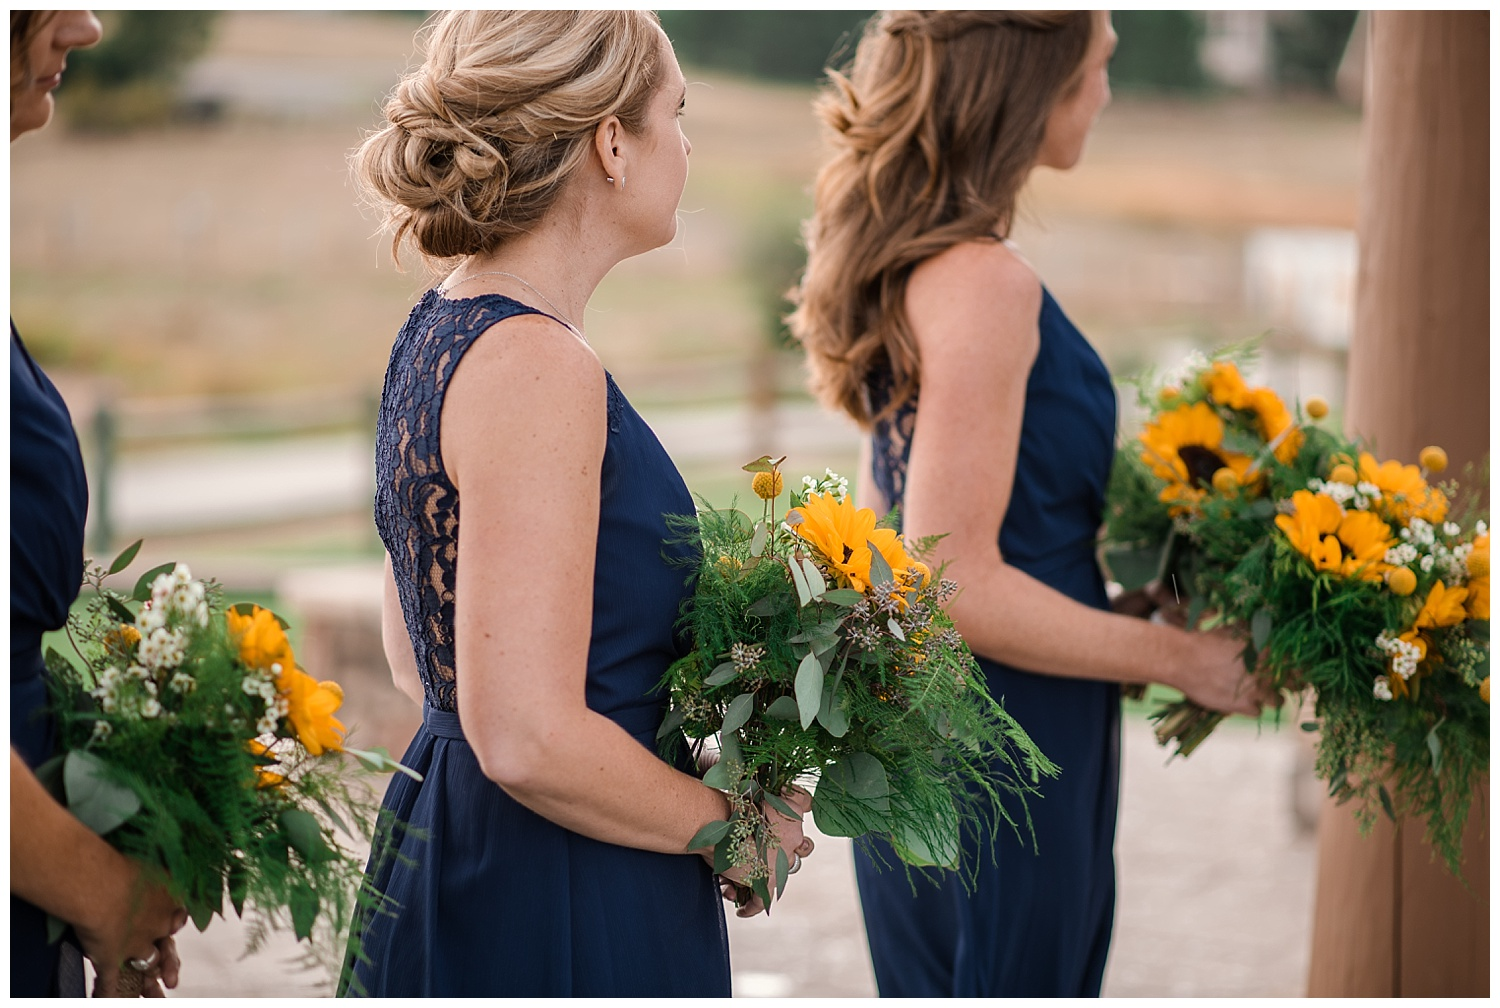 wedding ceremony at estes park resort, rocky mountain elopement photographer, rocky mountain wedding photographer, colorado wedding photographer, Estes Park wedding photographer